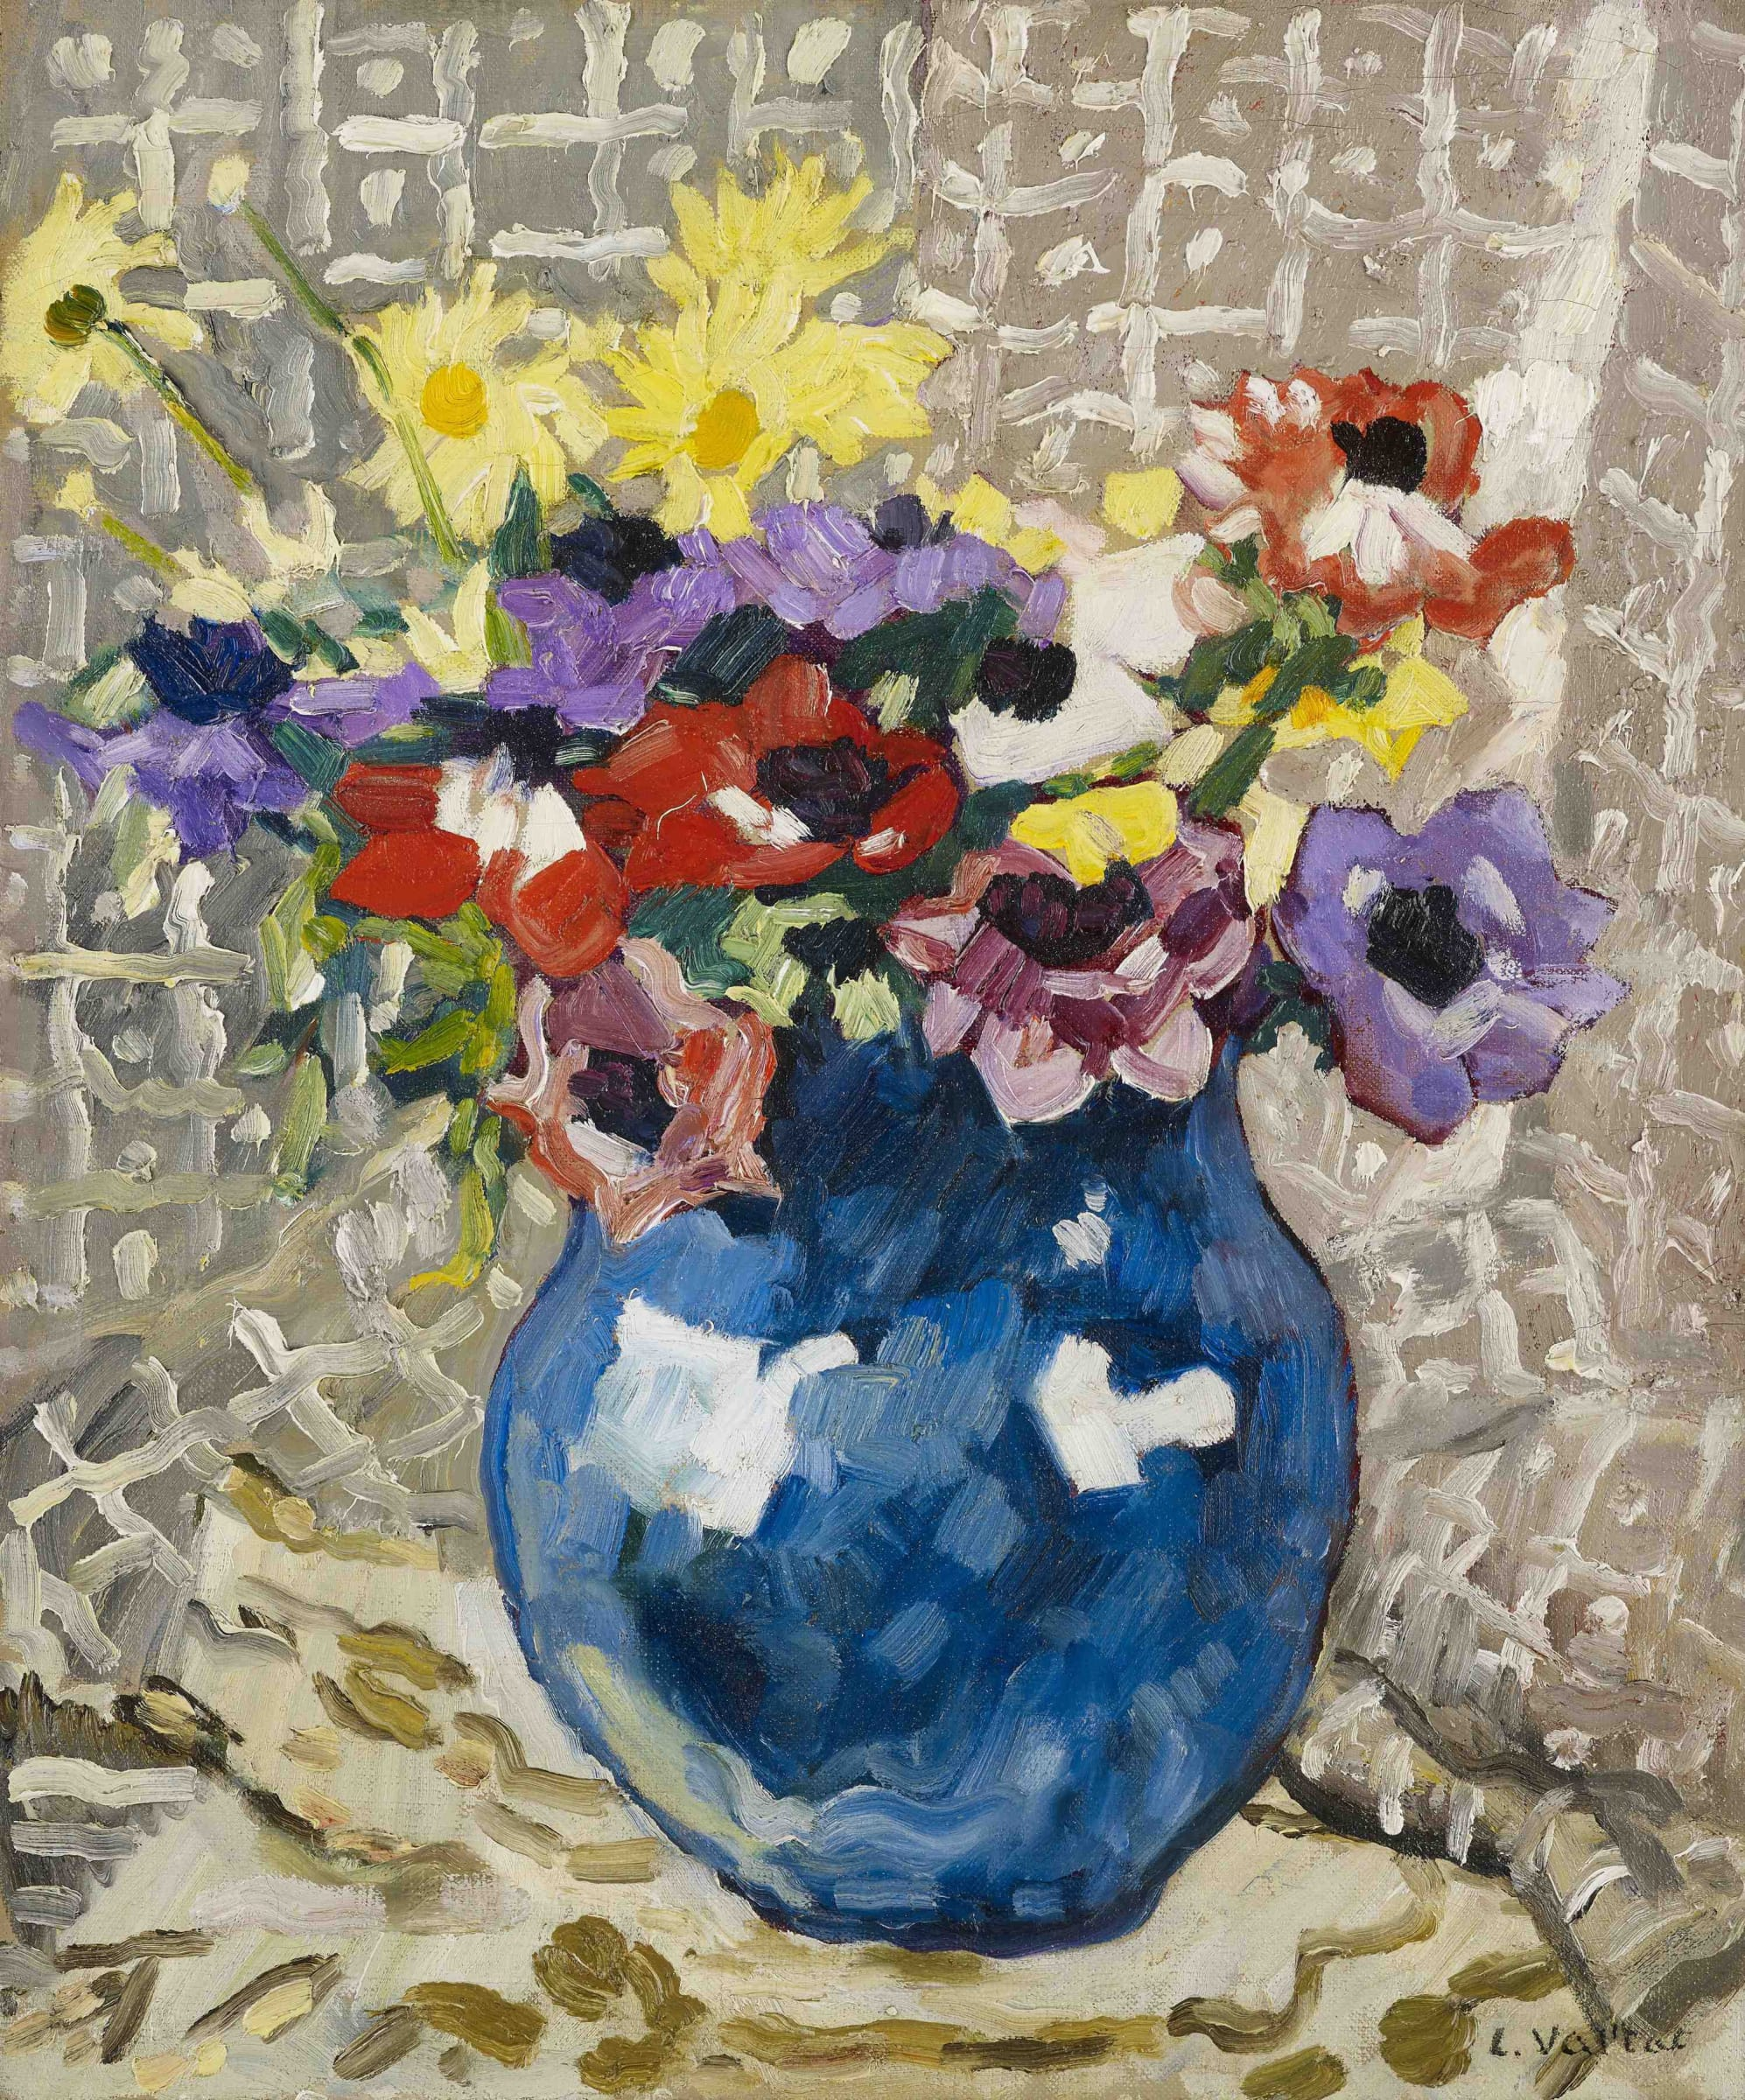 "<span class=""link fancybox-details-link""><a href=""/artists/78-louis-valtat/works/9424-louis-valtat-an-mones-et-marguerites-au-vase-bleu-1933/"">View Detail Page</a></span><div class=""artist""><span class=""artist""><strong>Louis Valtat</strong></span></div>